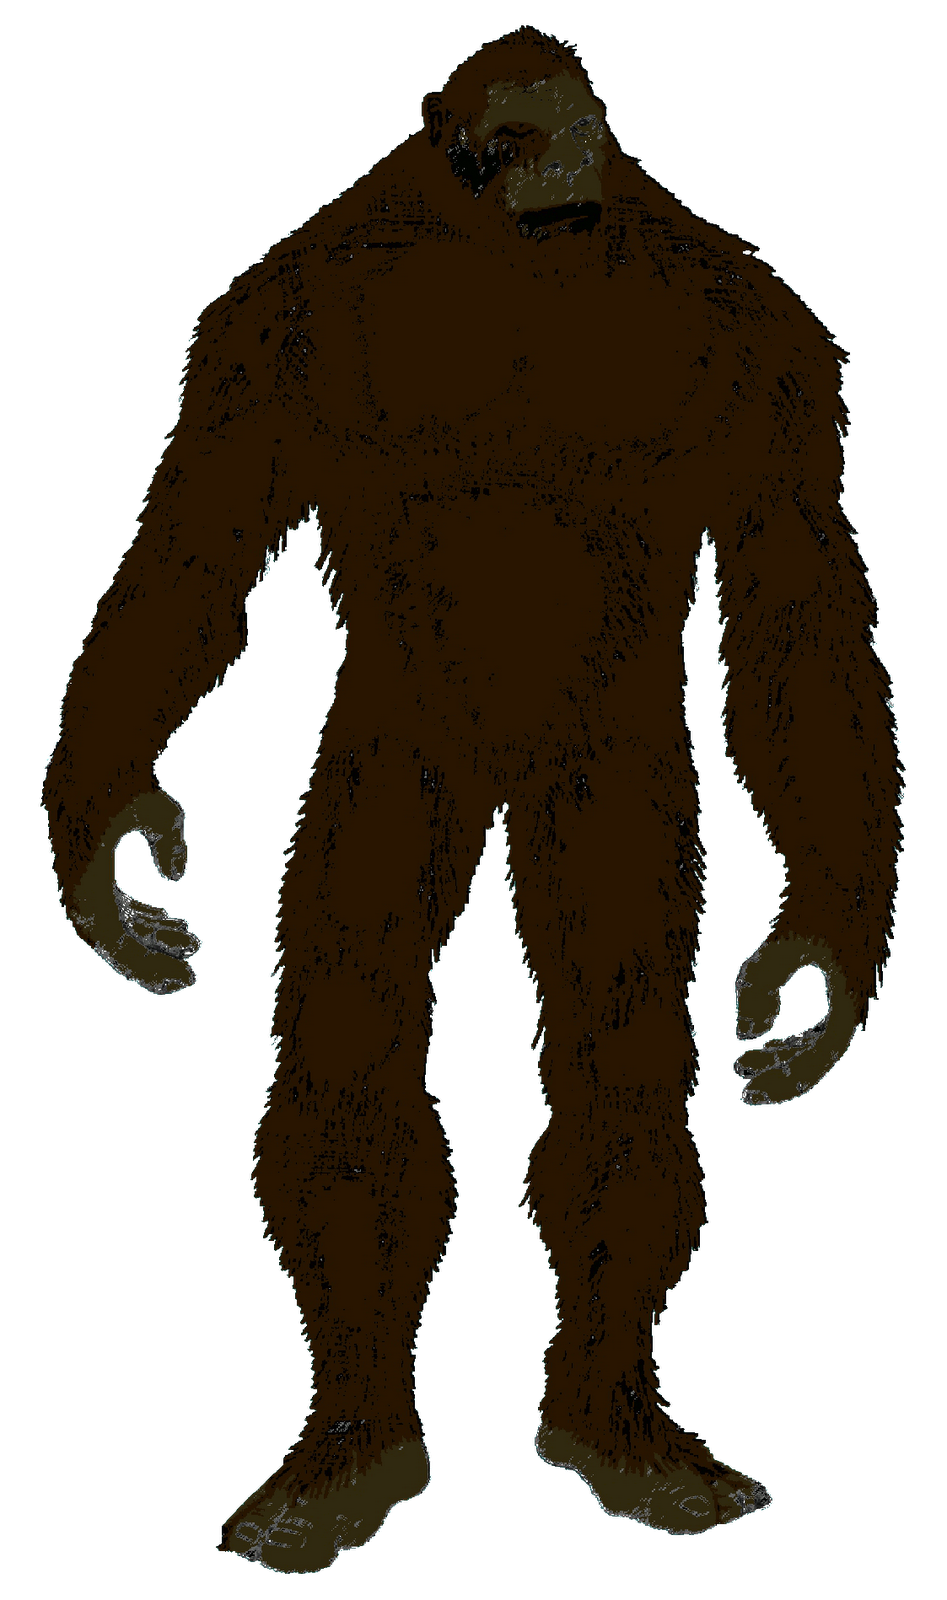 Silhouette yeti clip art. Bigfoot png image black and white